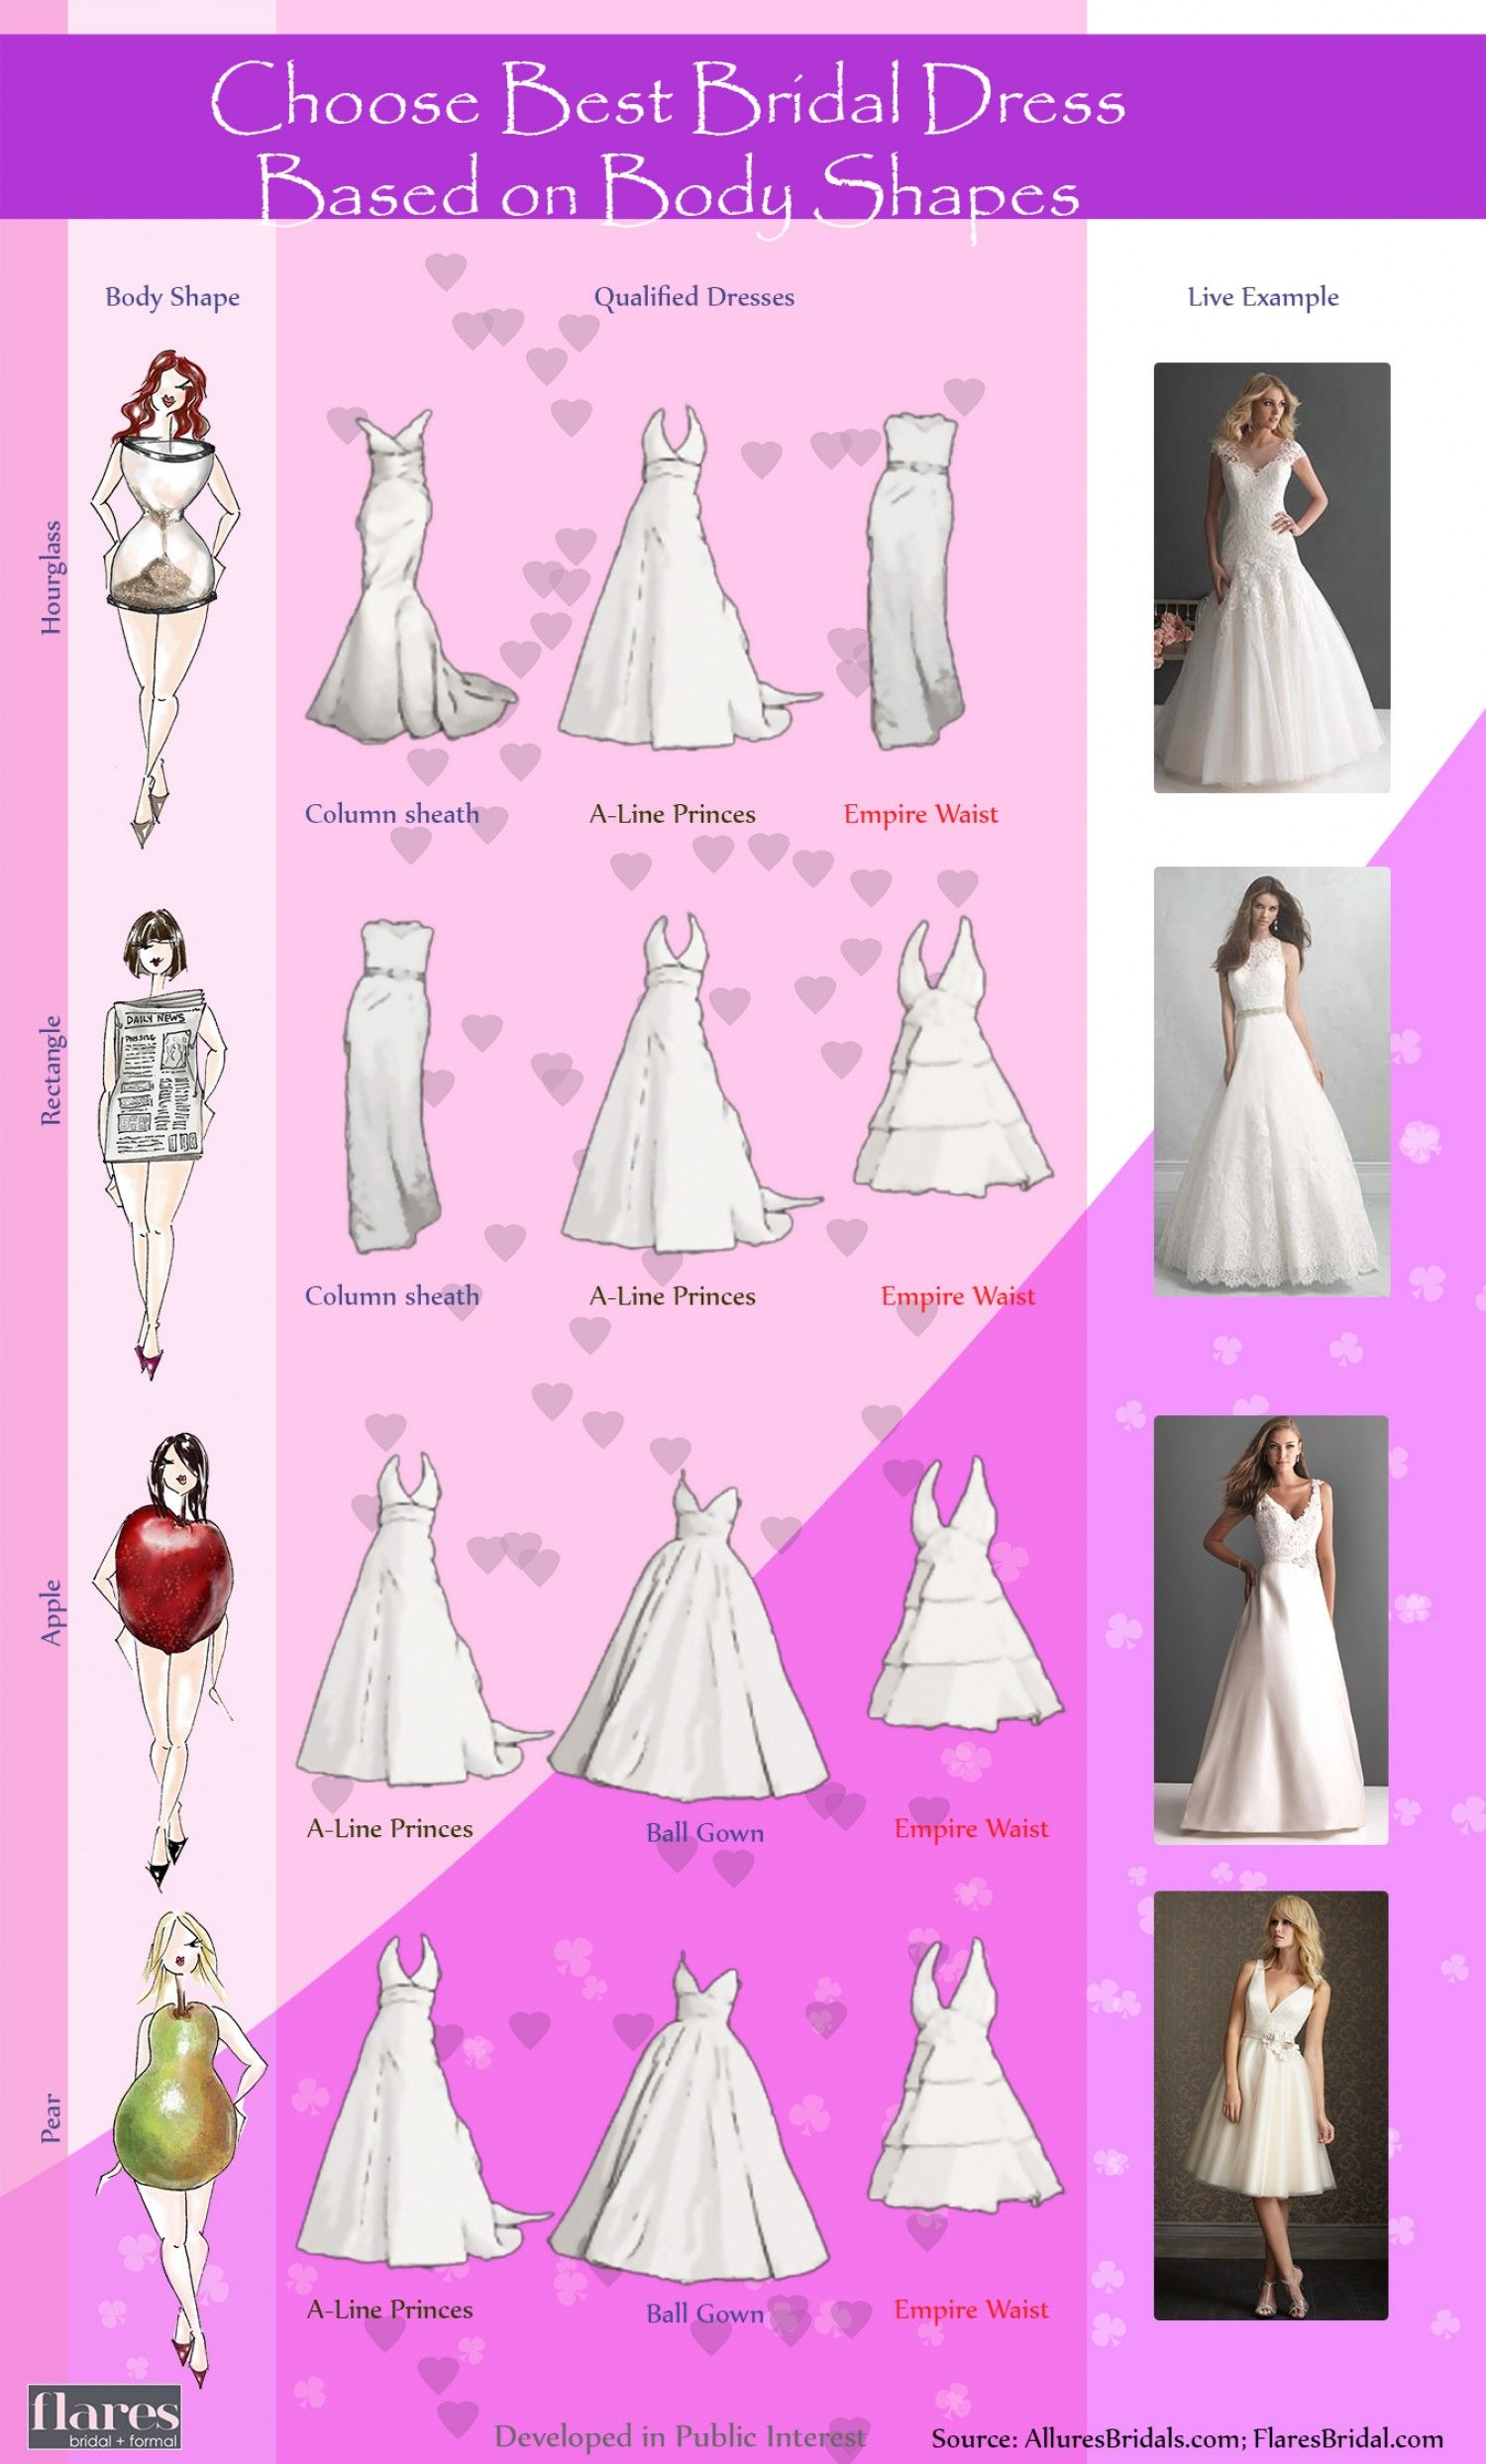 Choose Best Bridal Dress Based on Body Shapes Infographic | Weddings ...